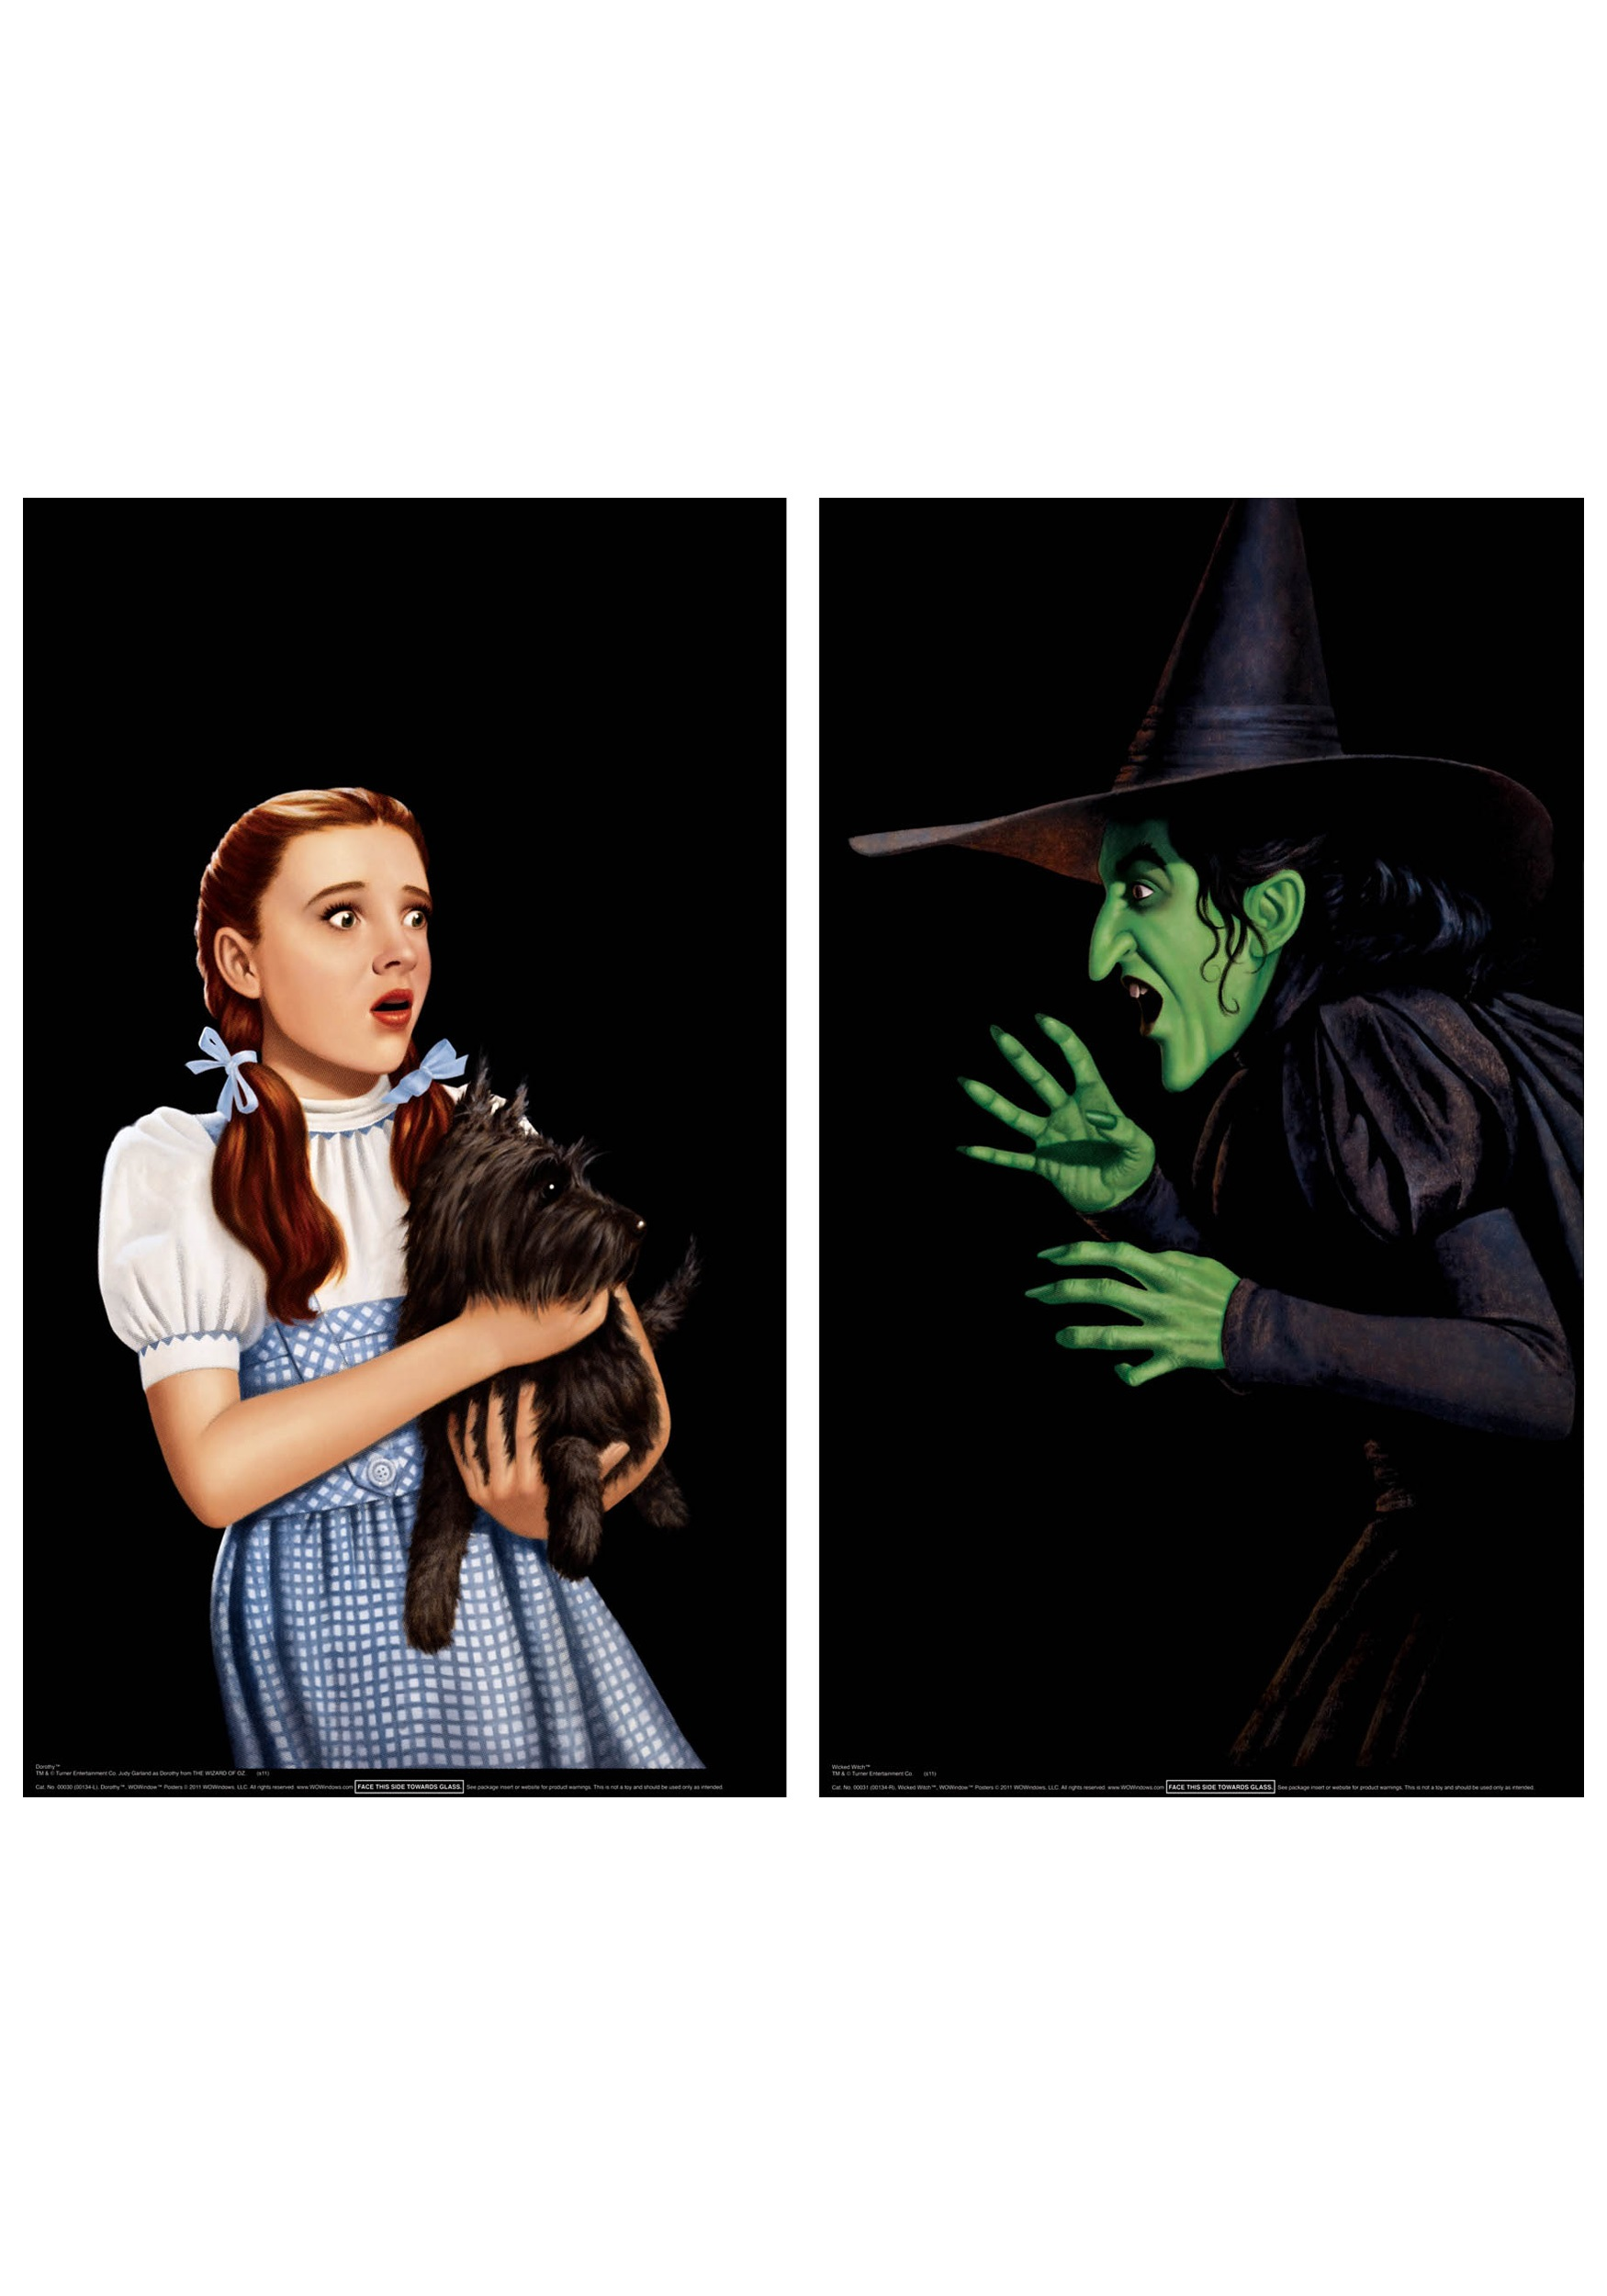 dorothy and wicked witch window cling